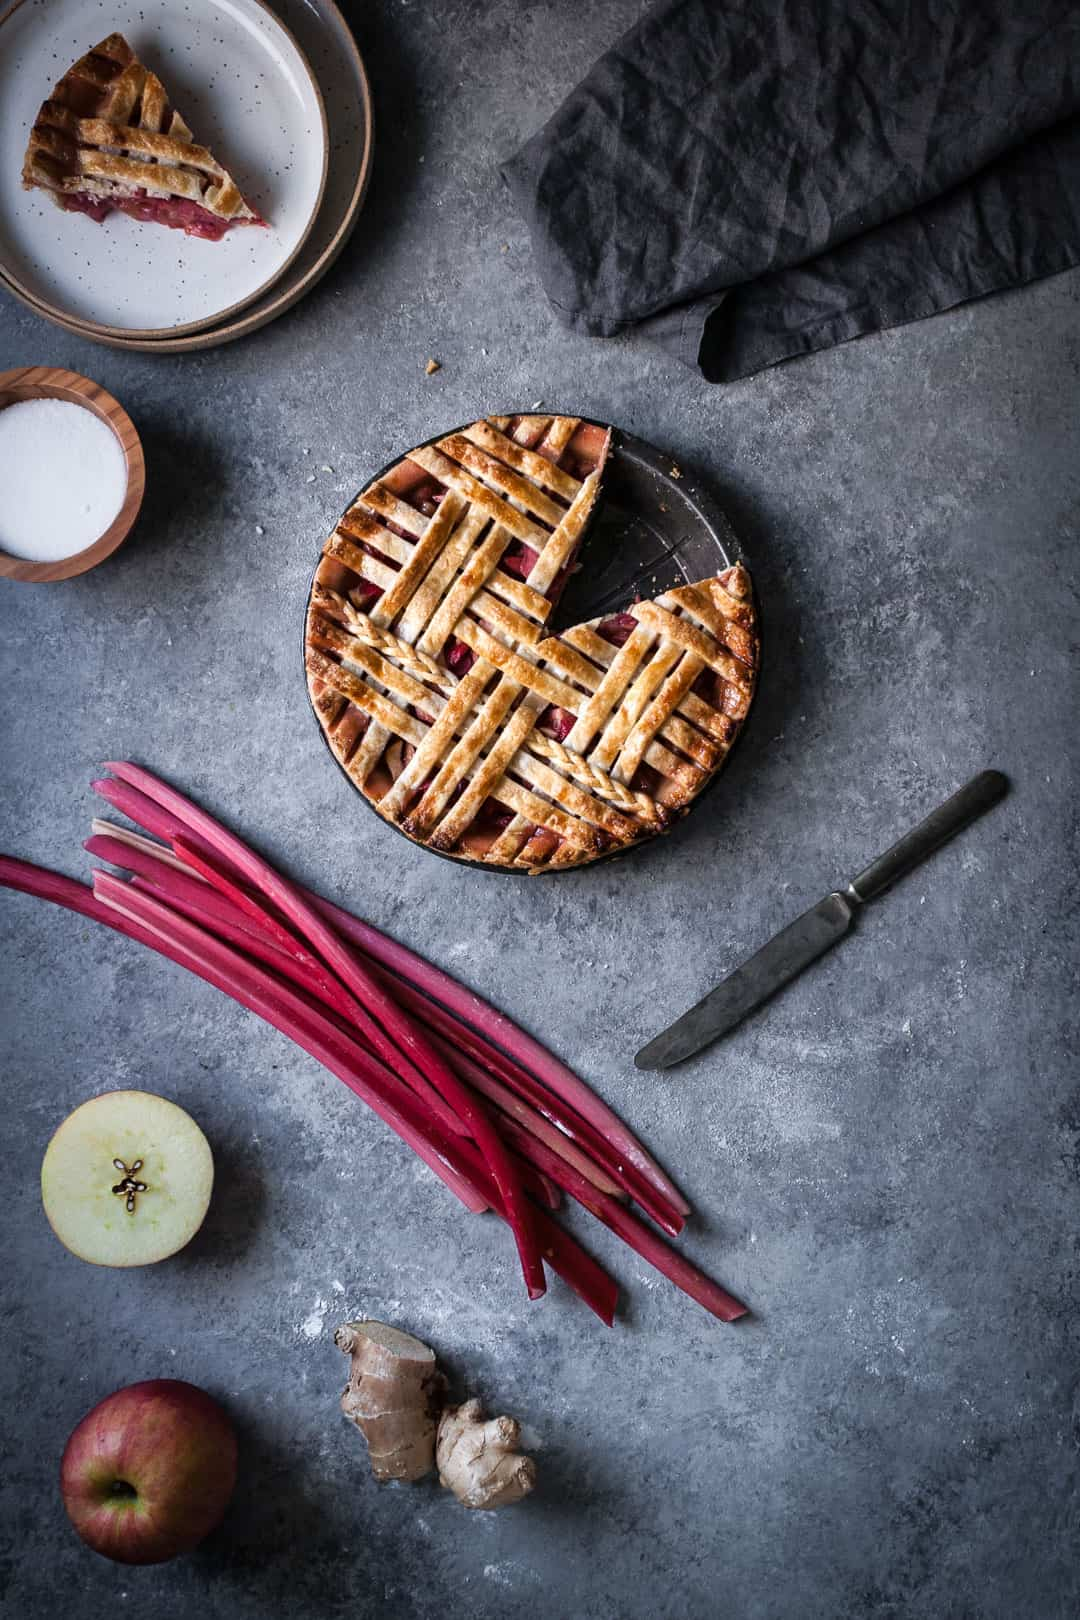 baked rhubarb apple pie with ginger and lemongrass on a grey surface with a piece cut out and the pie ingredients surrounding it